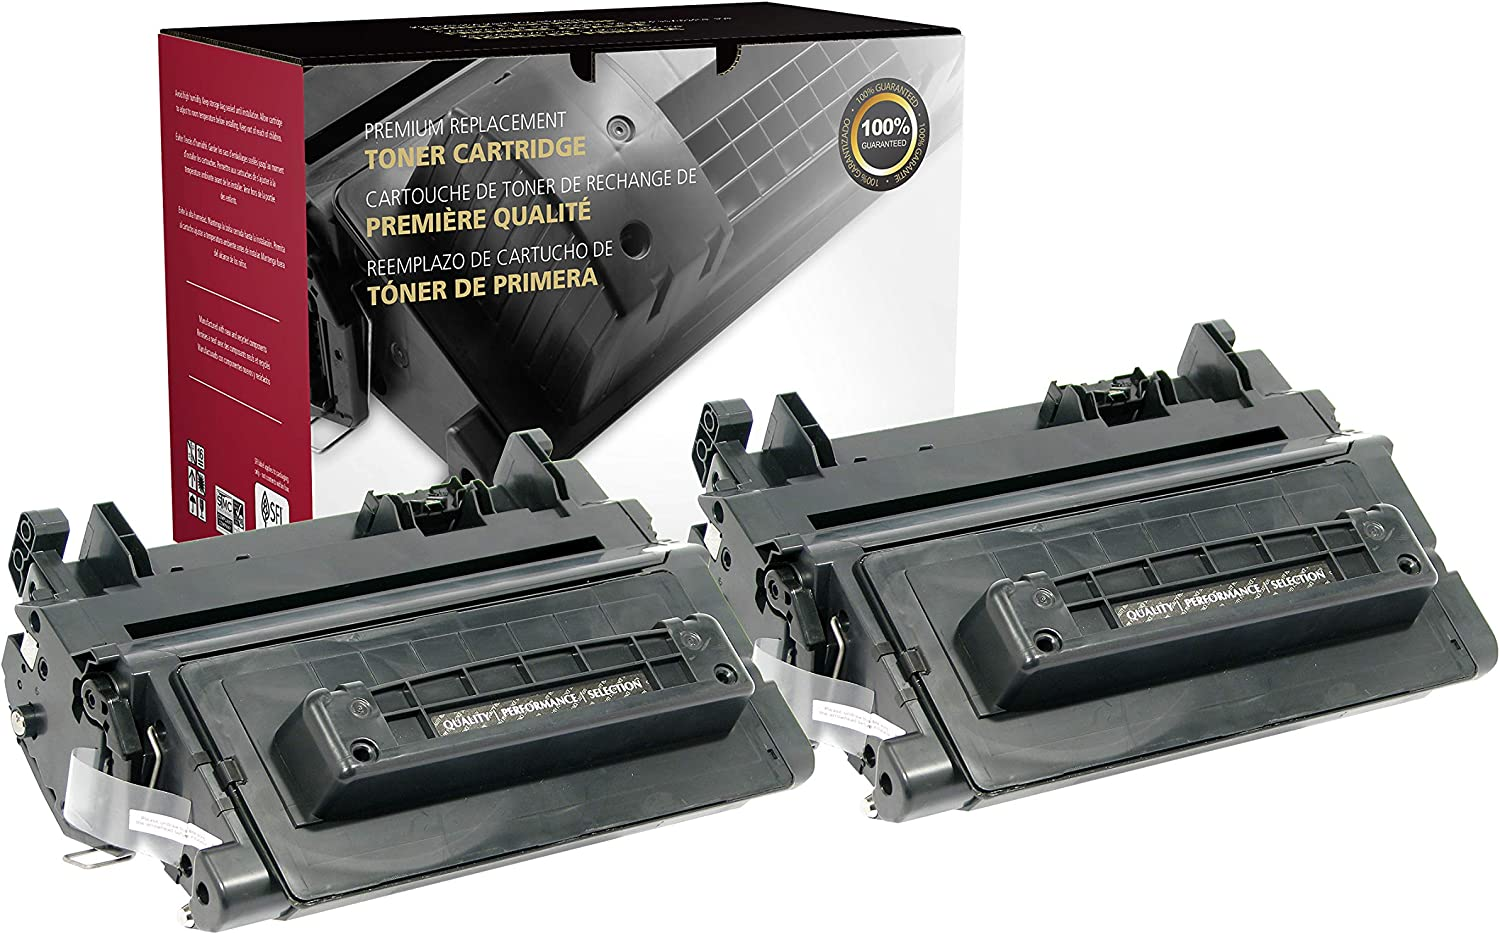 Inksters Remanufactured Toner Cartridge Replacement for HP CC364A - Extended Yield 18K Pages - 2 Pack HP 64A Black